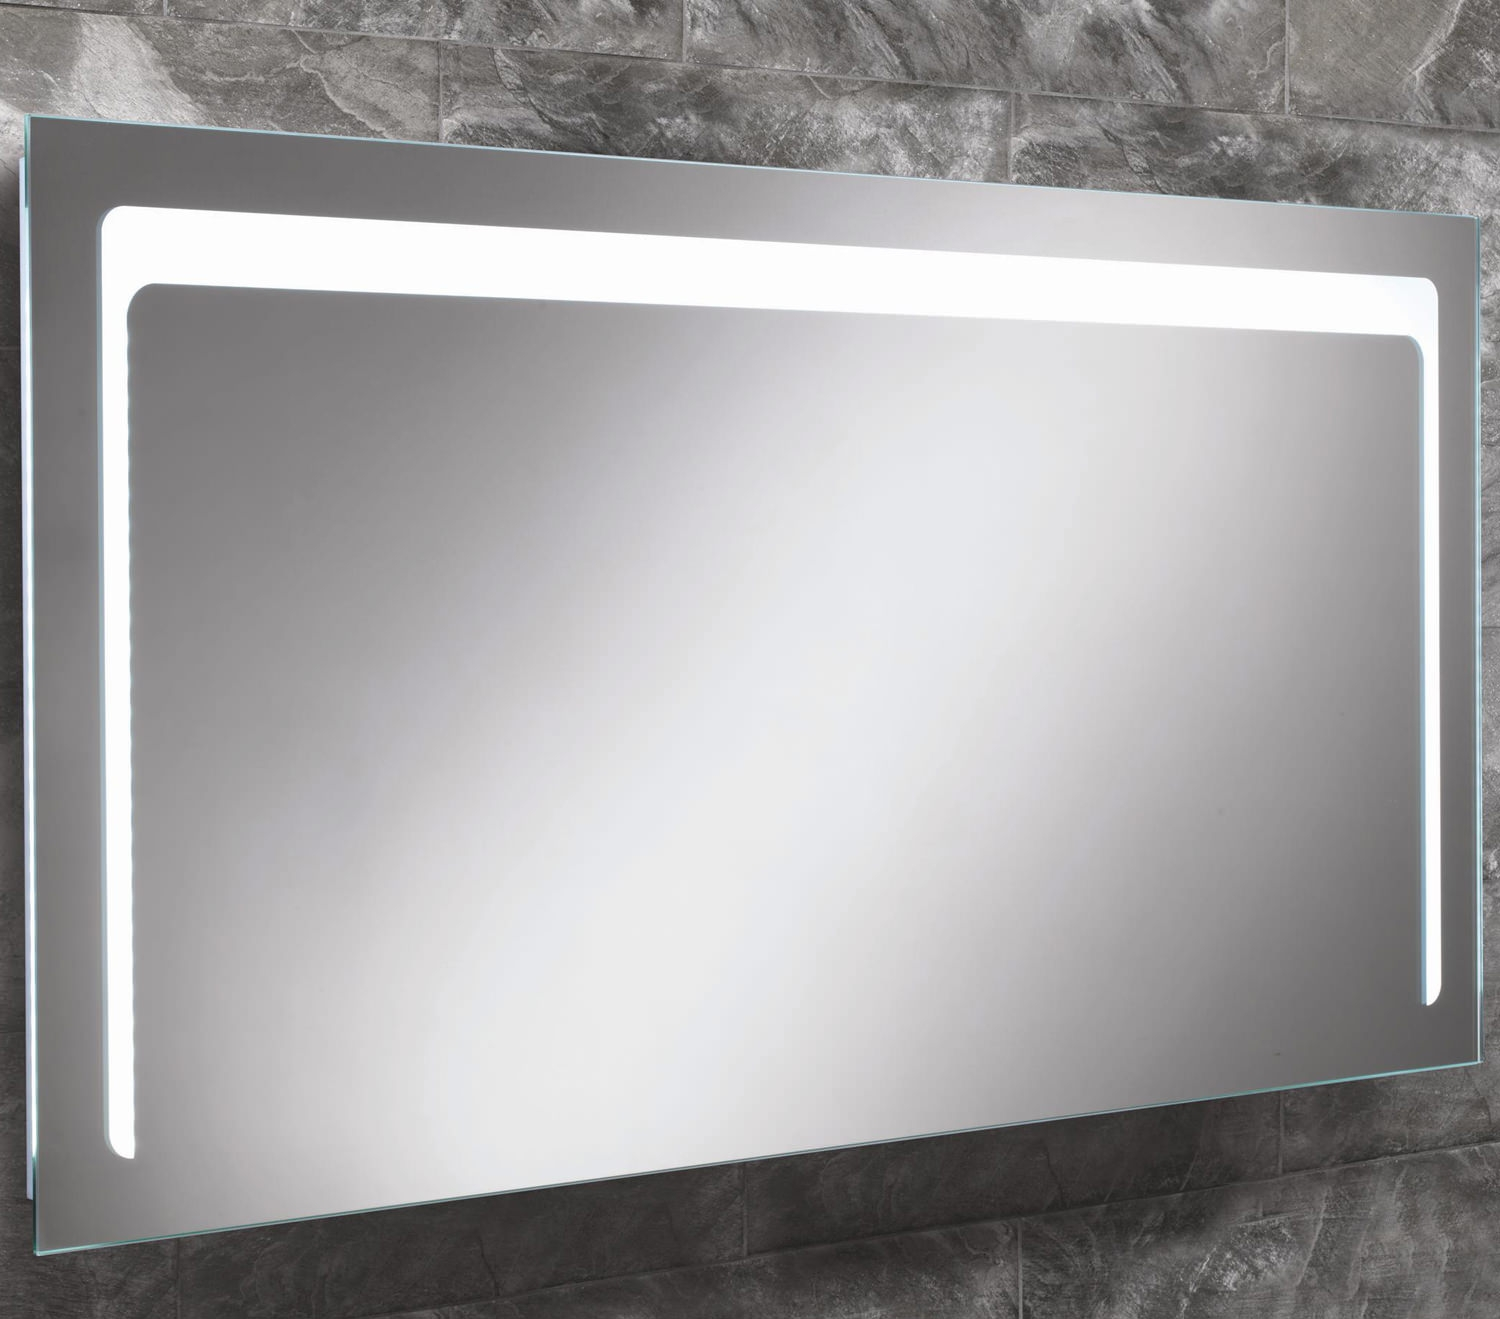 Illuminated Led Bathroom Mirror 1200mm X 600mm